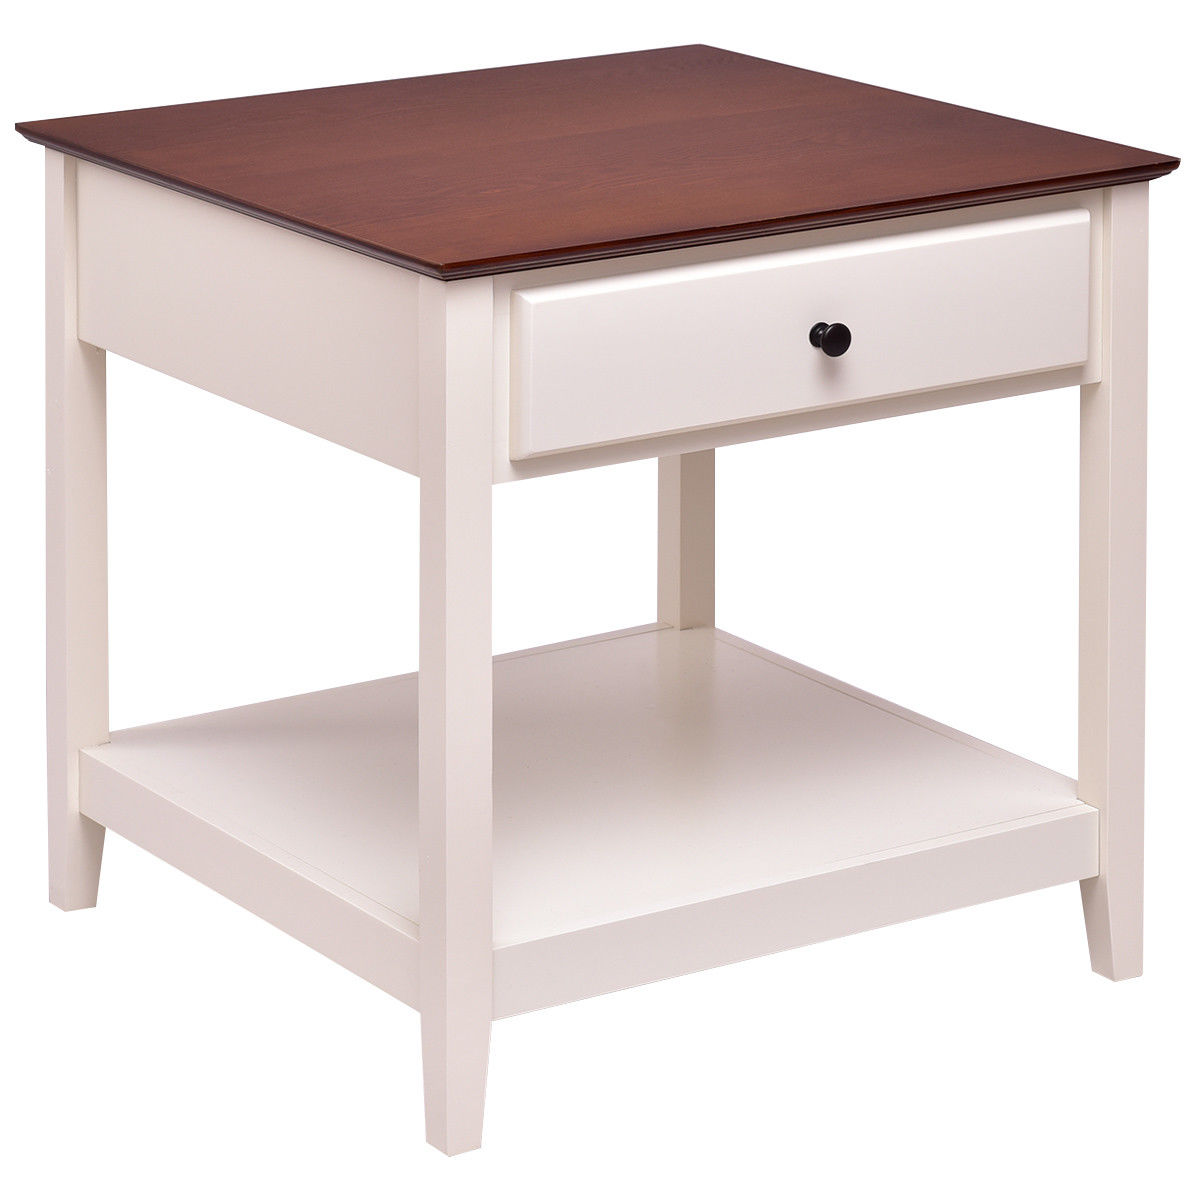 Costway Set of 2 Wood Side Table End Table Night Stand Coffee Table with Drawer & Shelf - image 6 de 9